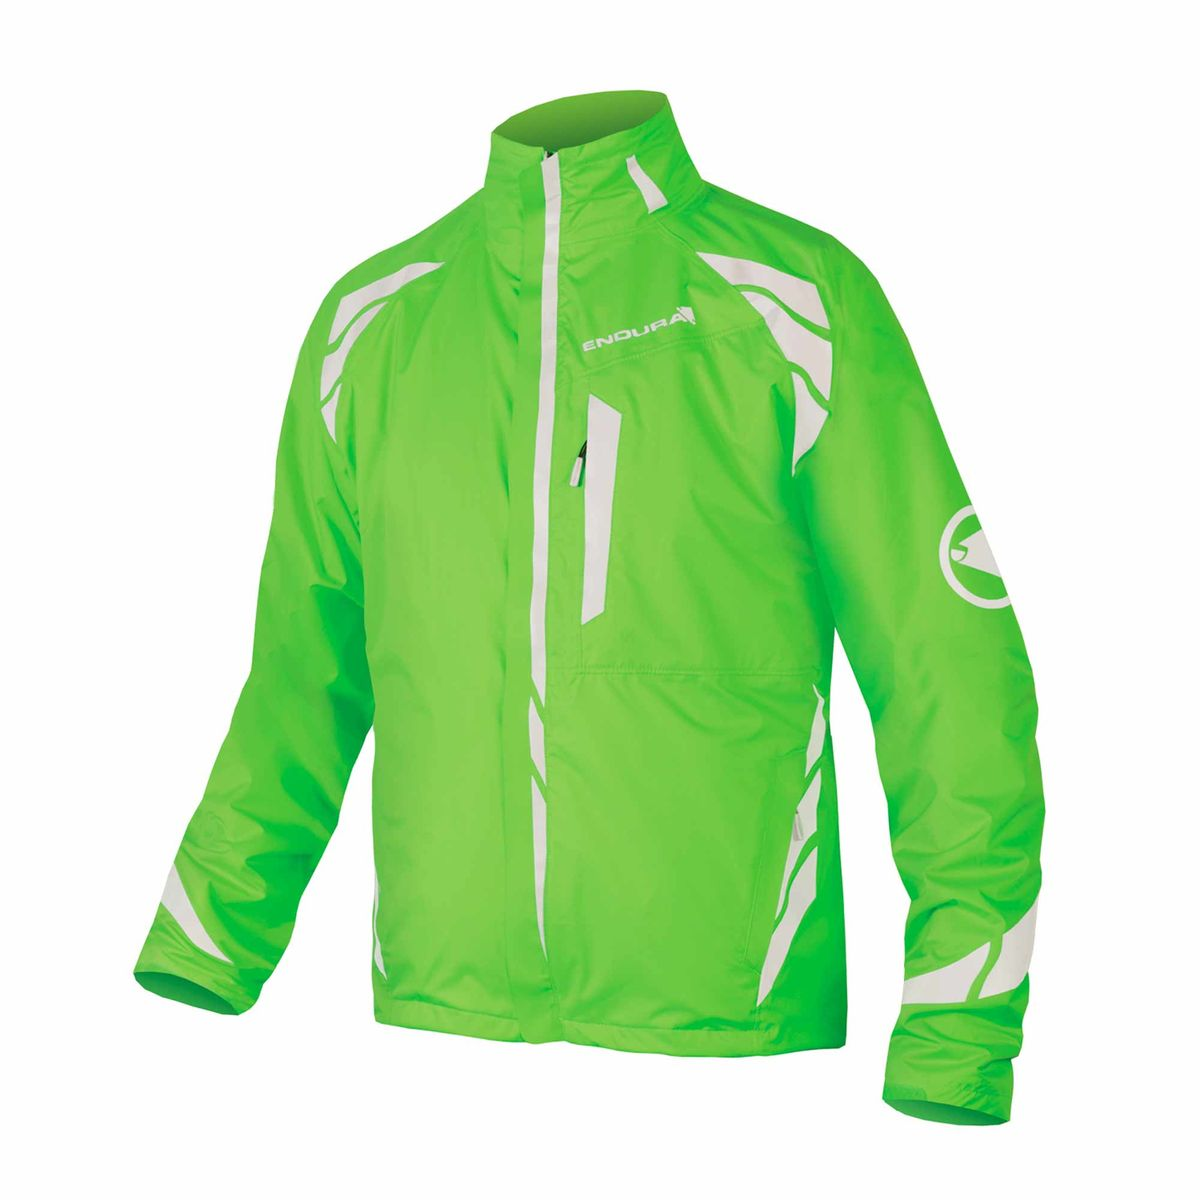 LUMINITE 4in1 waterproof jacket